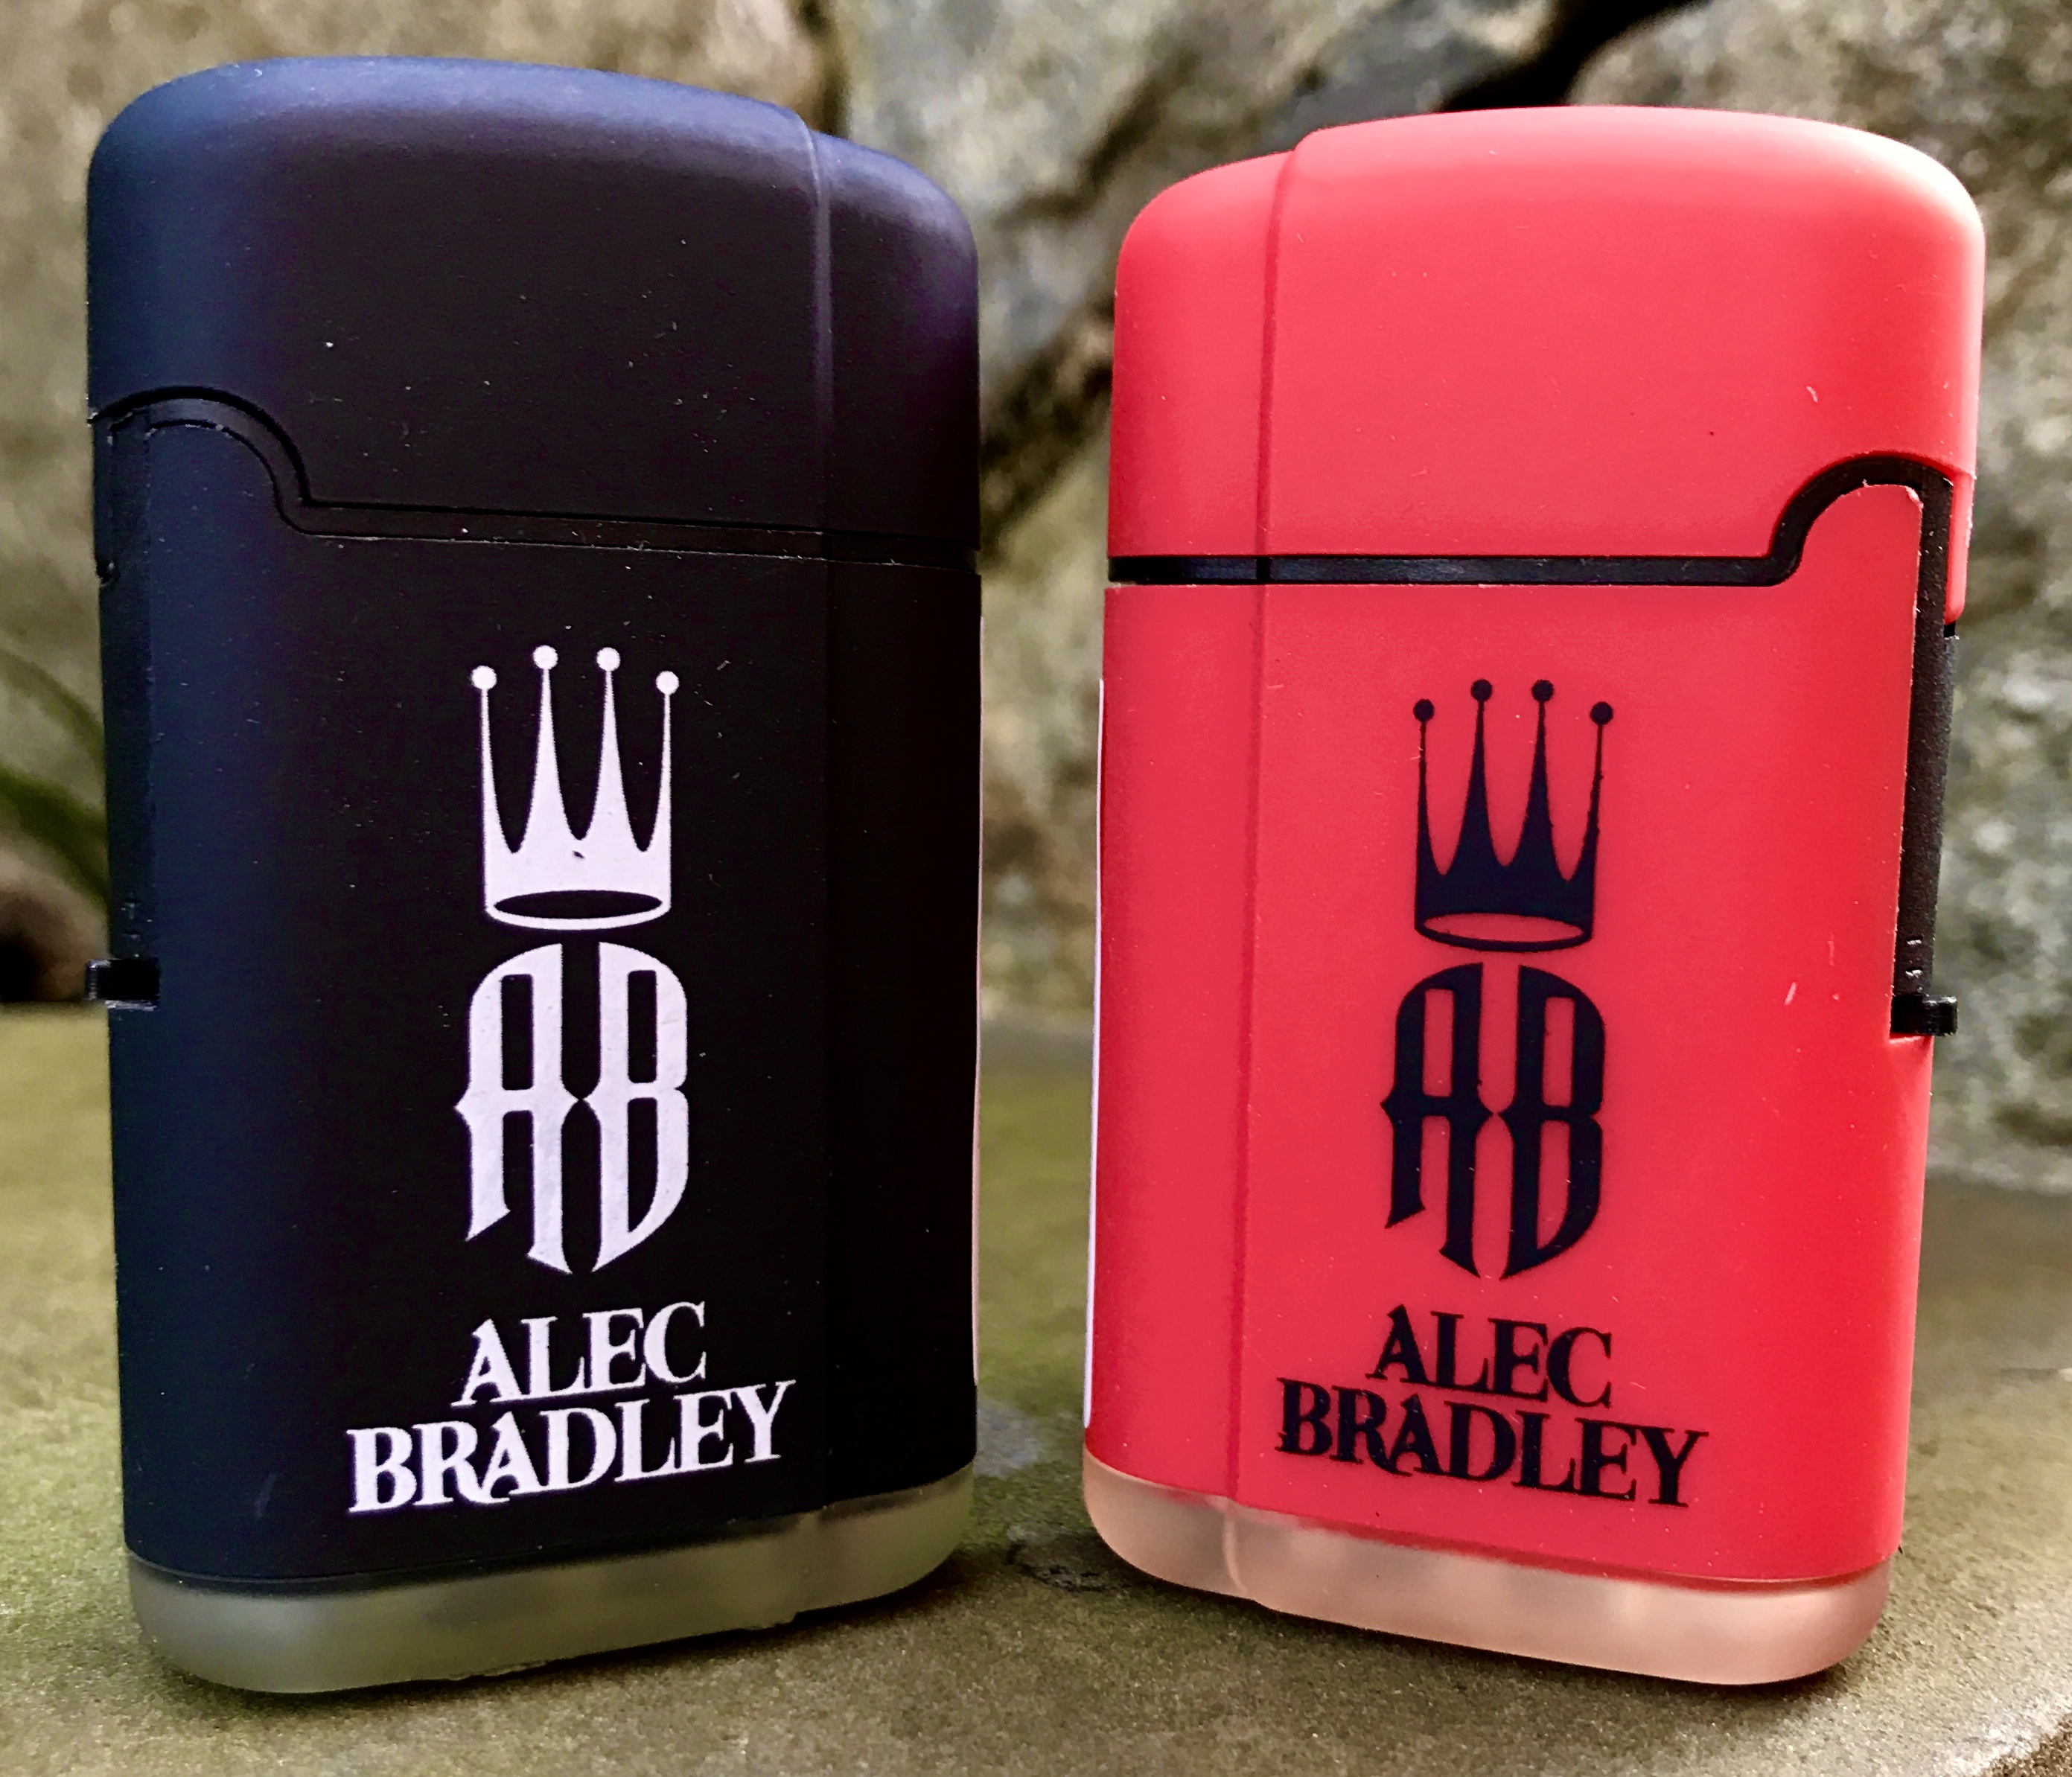 alec bradley cigar lighter image